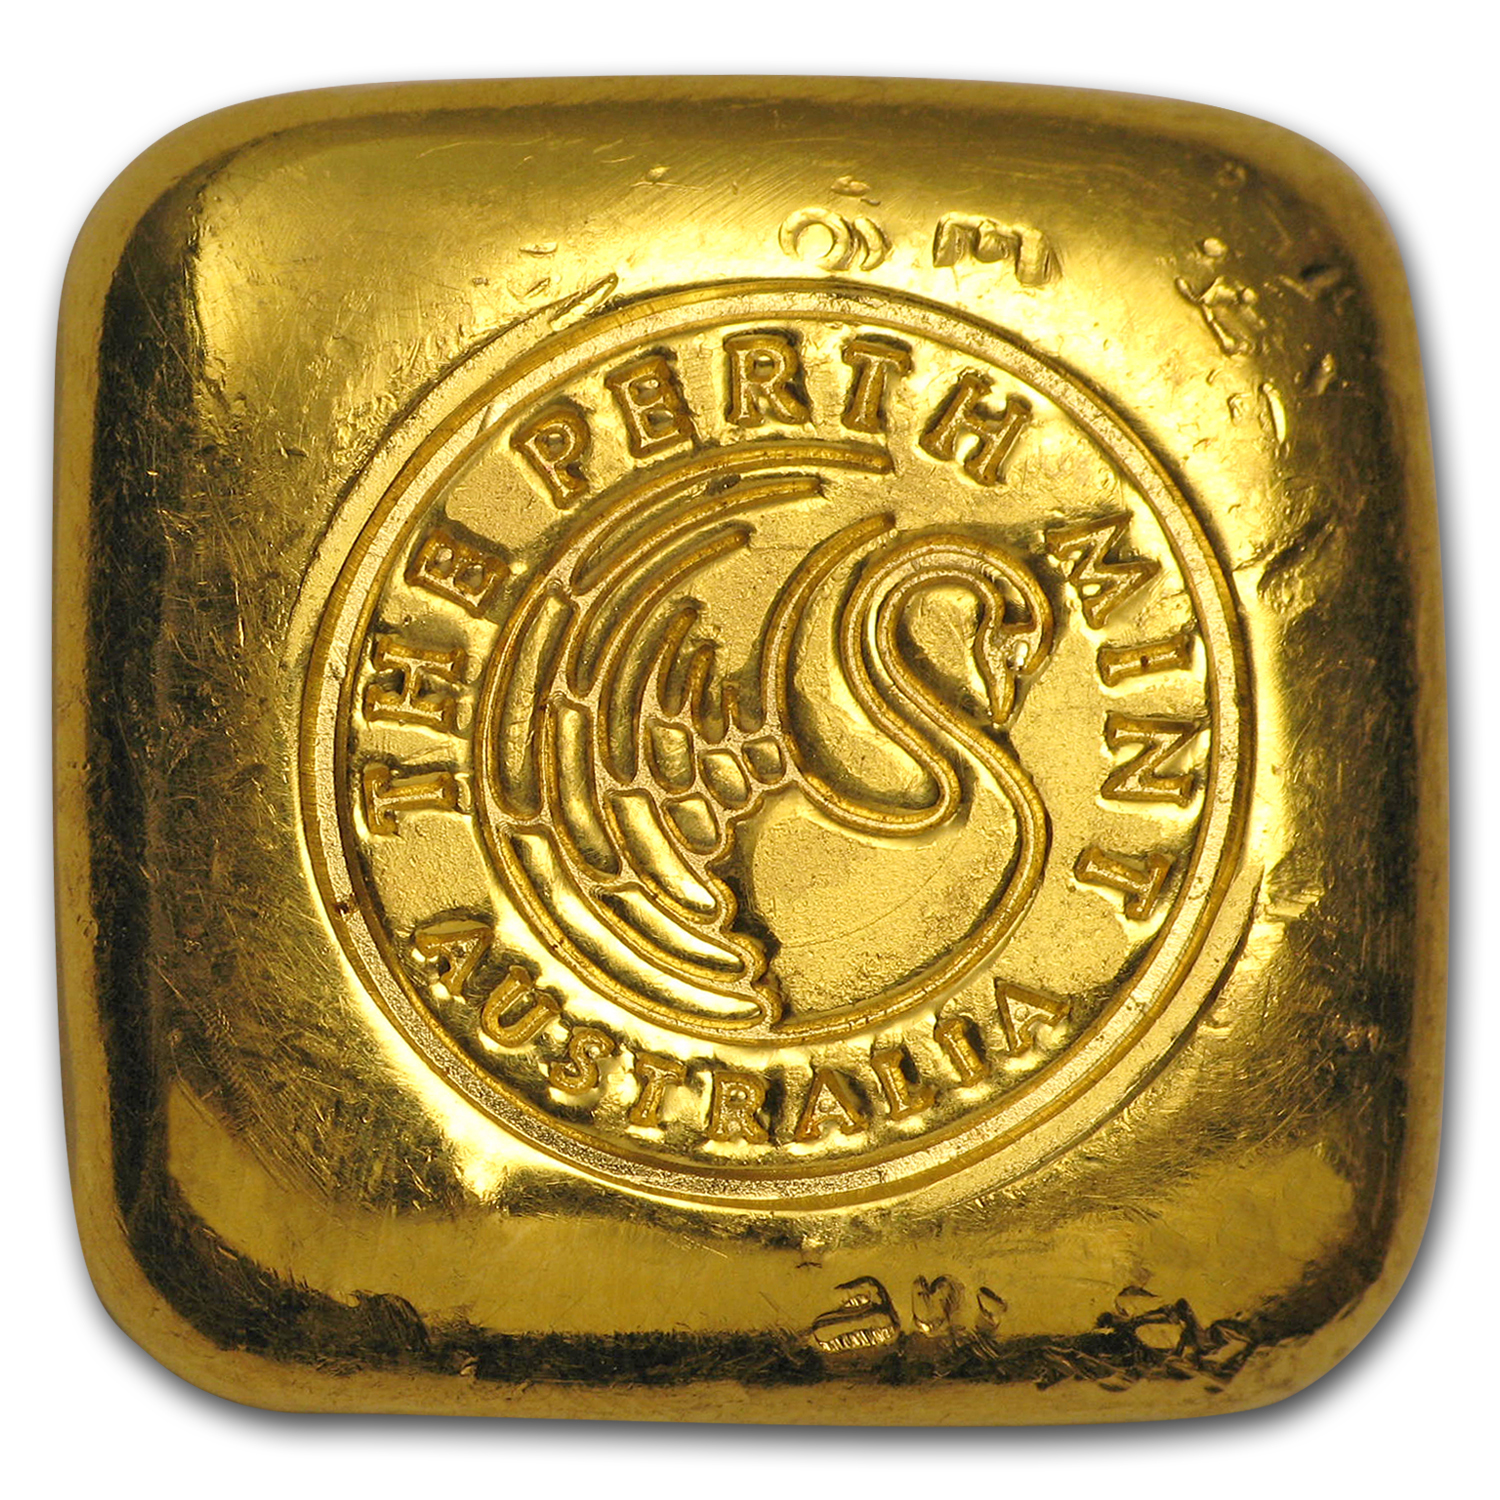 1 oz Gold Bar - Perth Mint (Square Button)